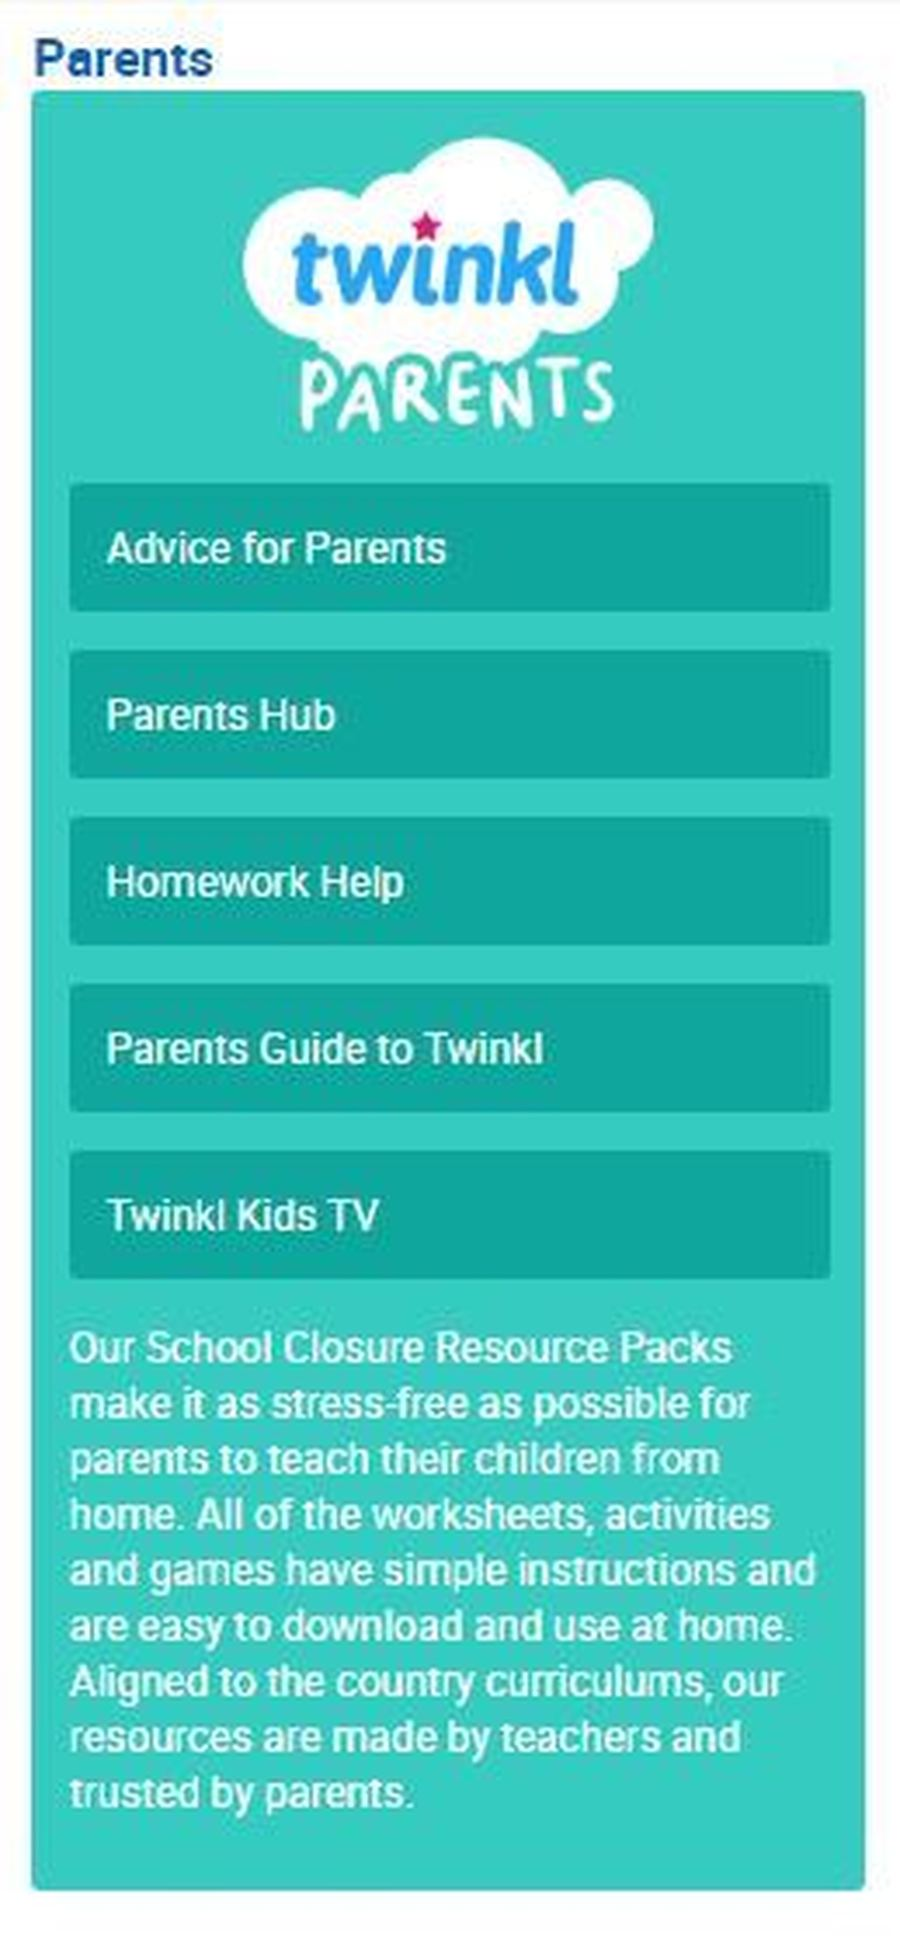 Find printable resources by clicking here